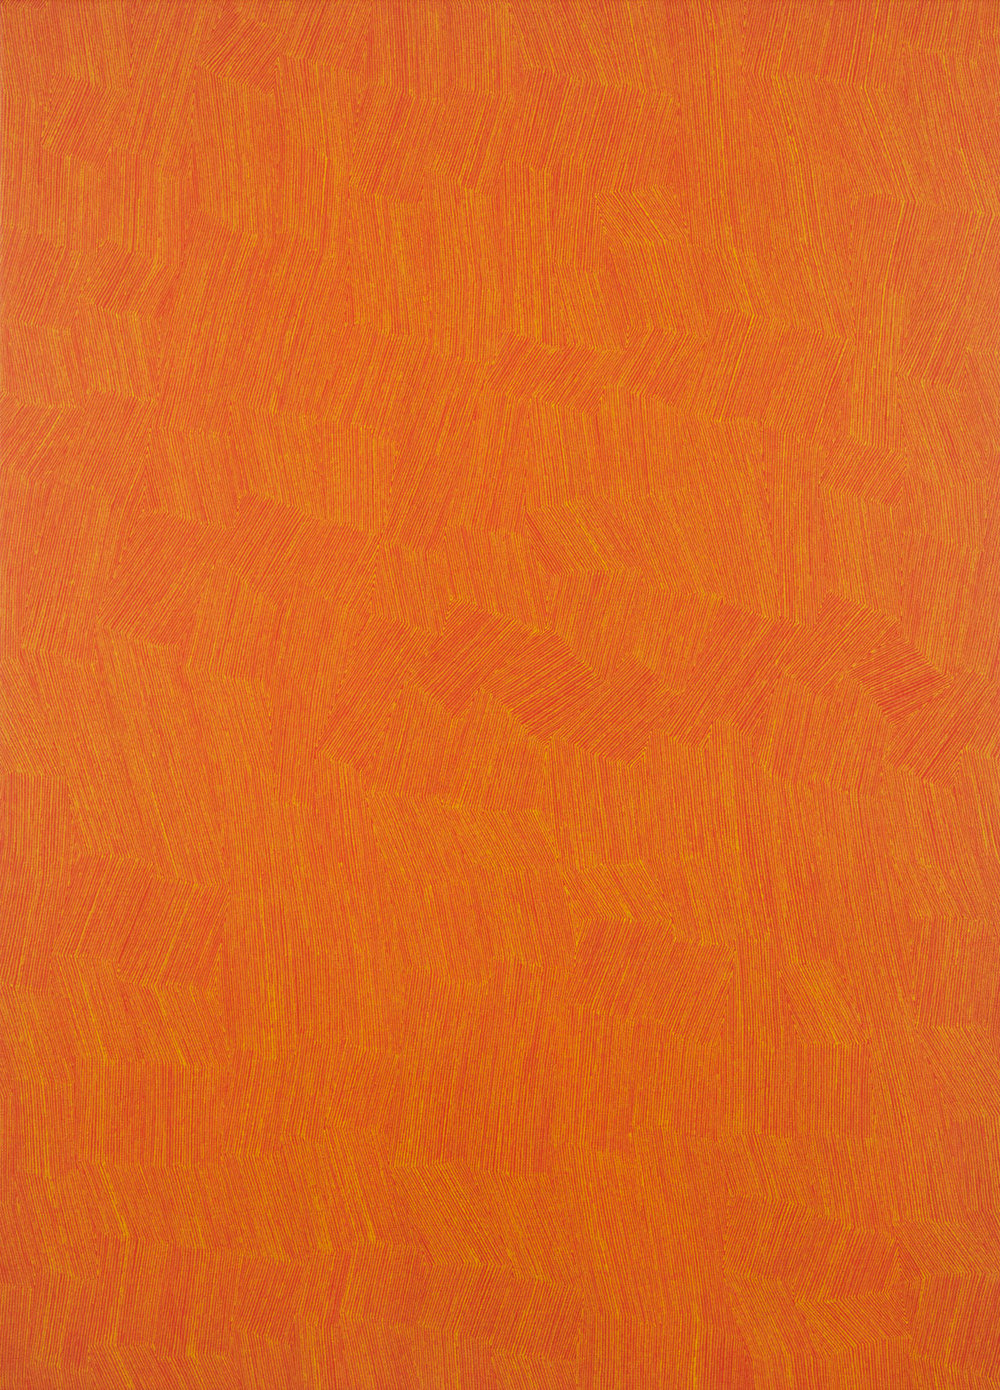 KARL WIEBKE  53-17 yellow on orange , 2017 acrylic on linen 83 x 60 cm